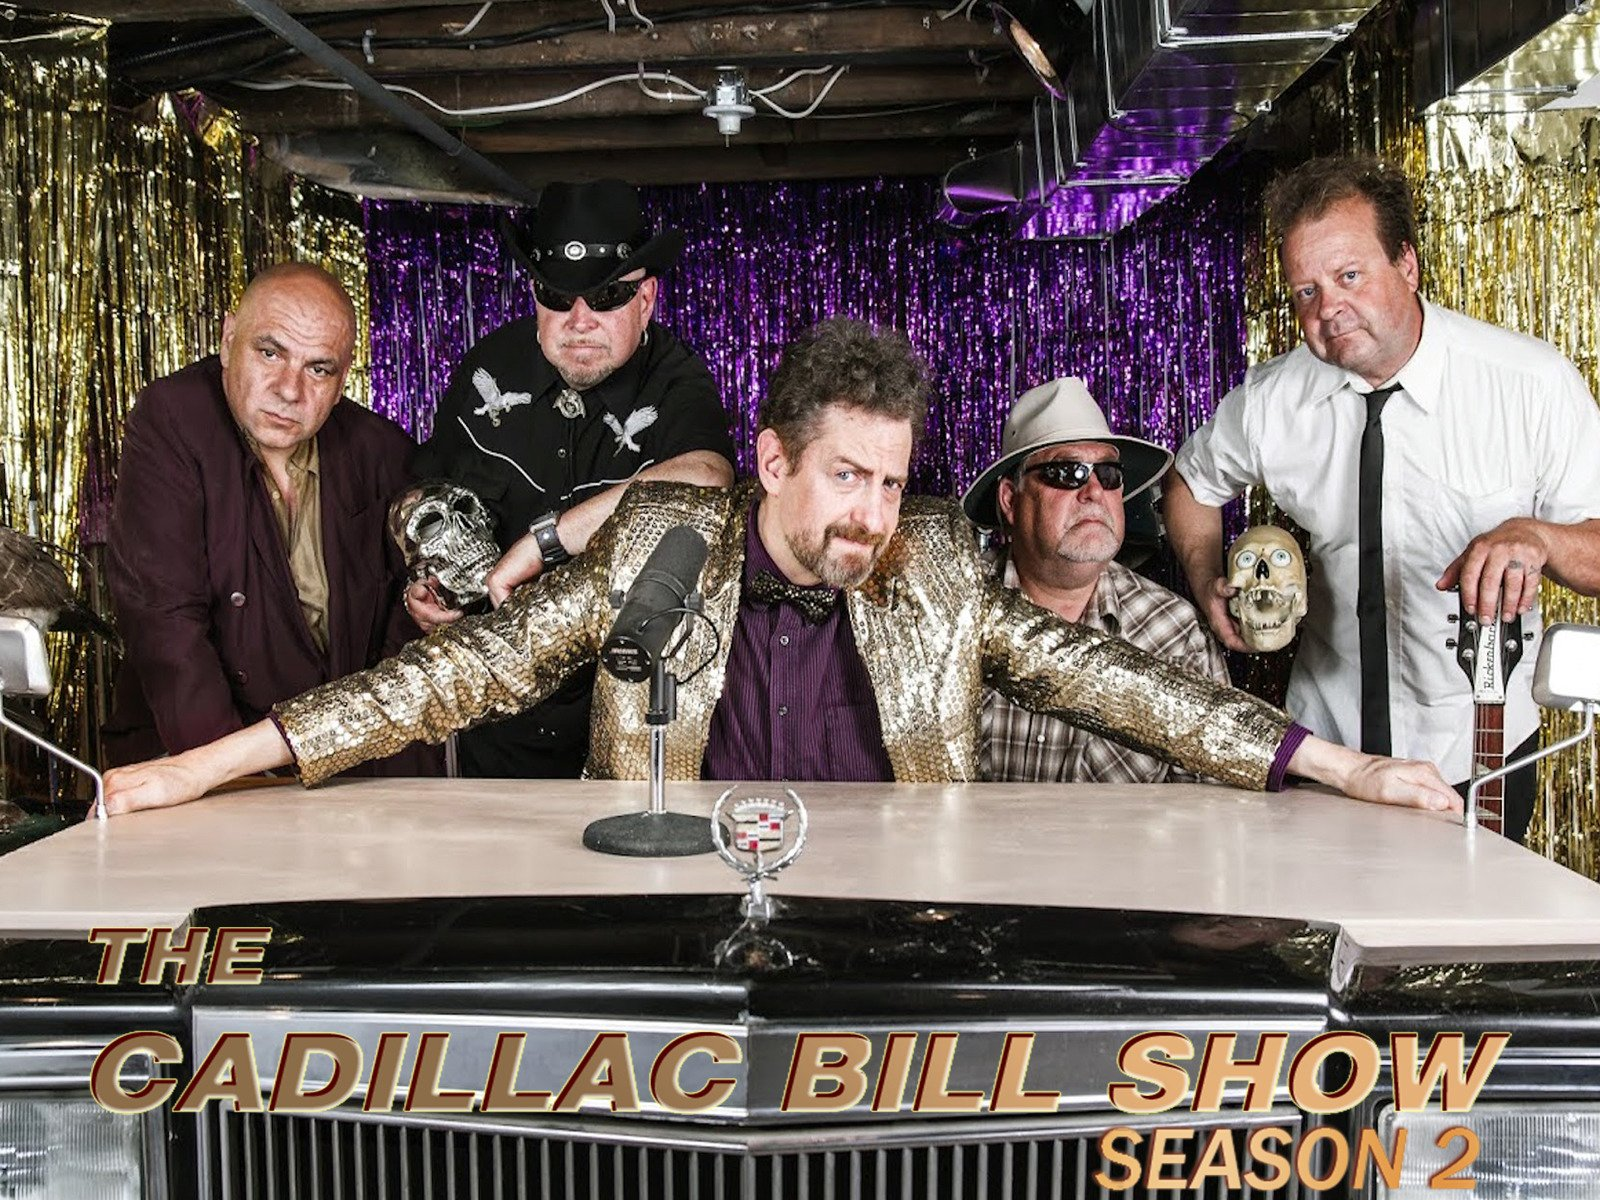 The Cadillac Bill Show (2nd Season) - Season 2